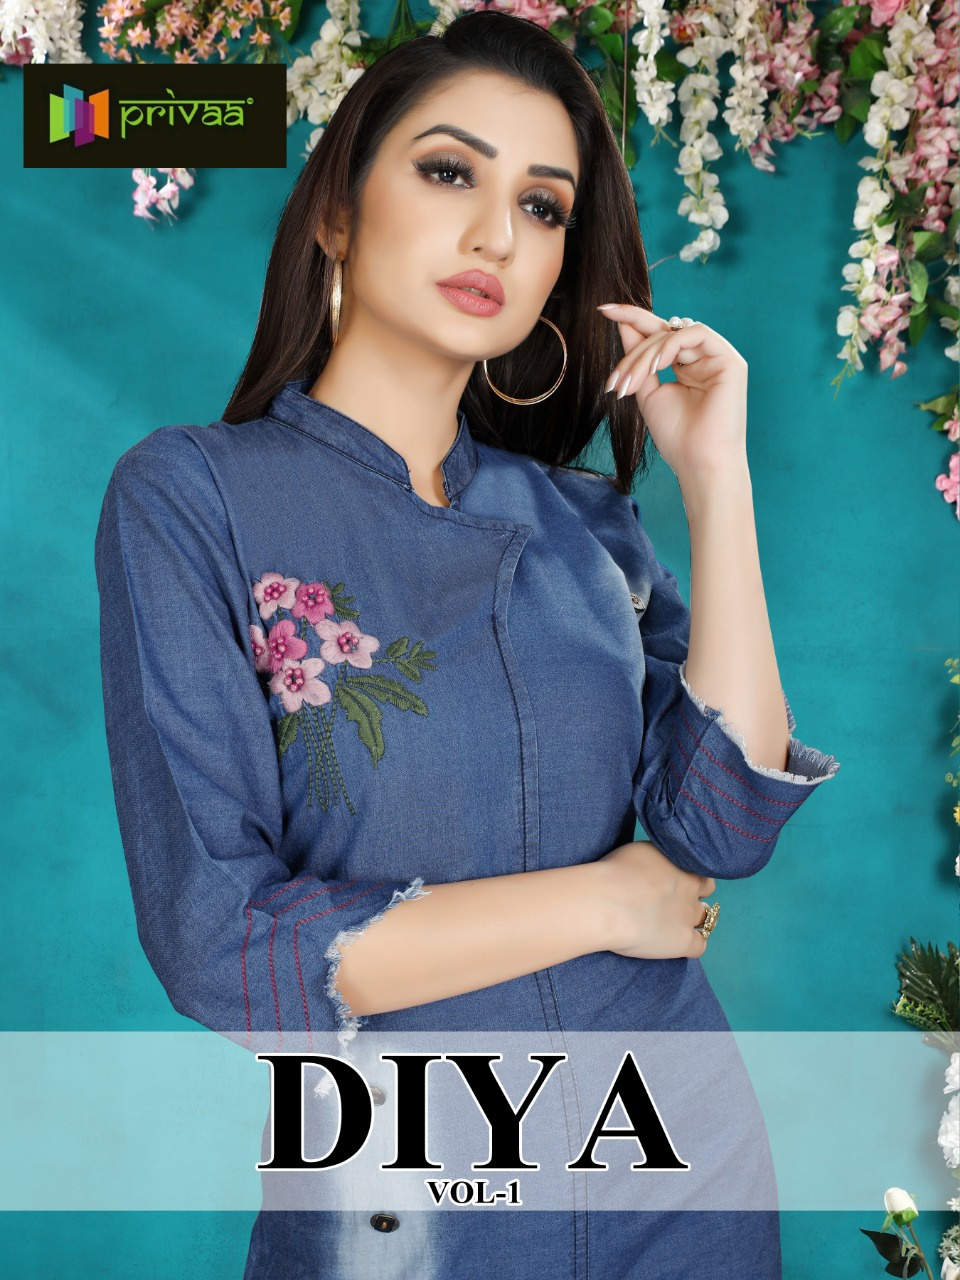 Privaa Diya vol 1 exclusive collection of denim gowns